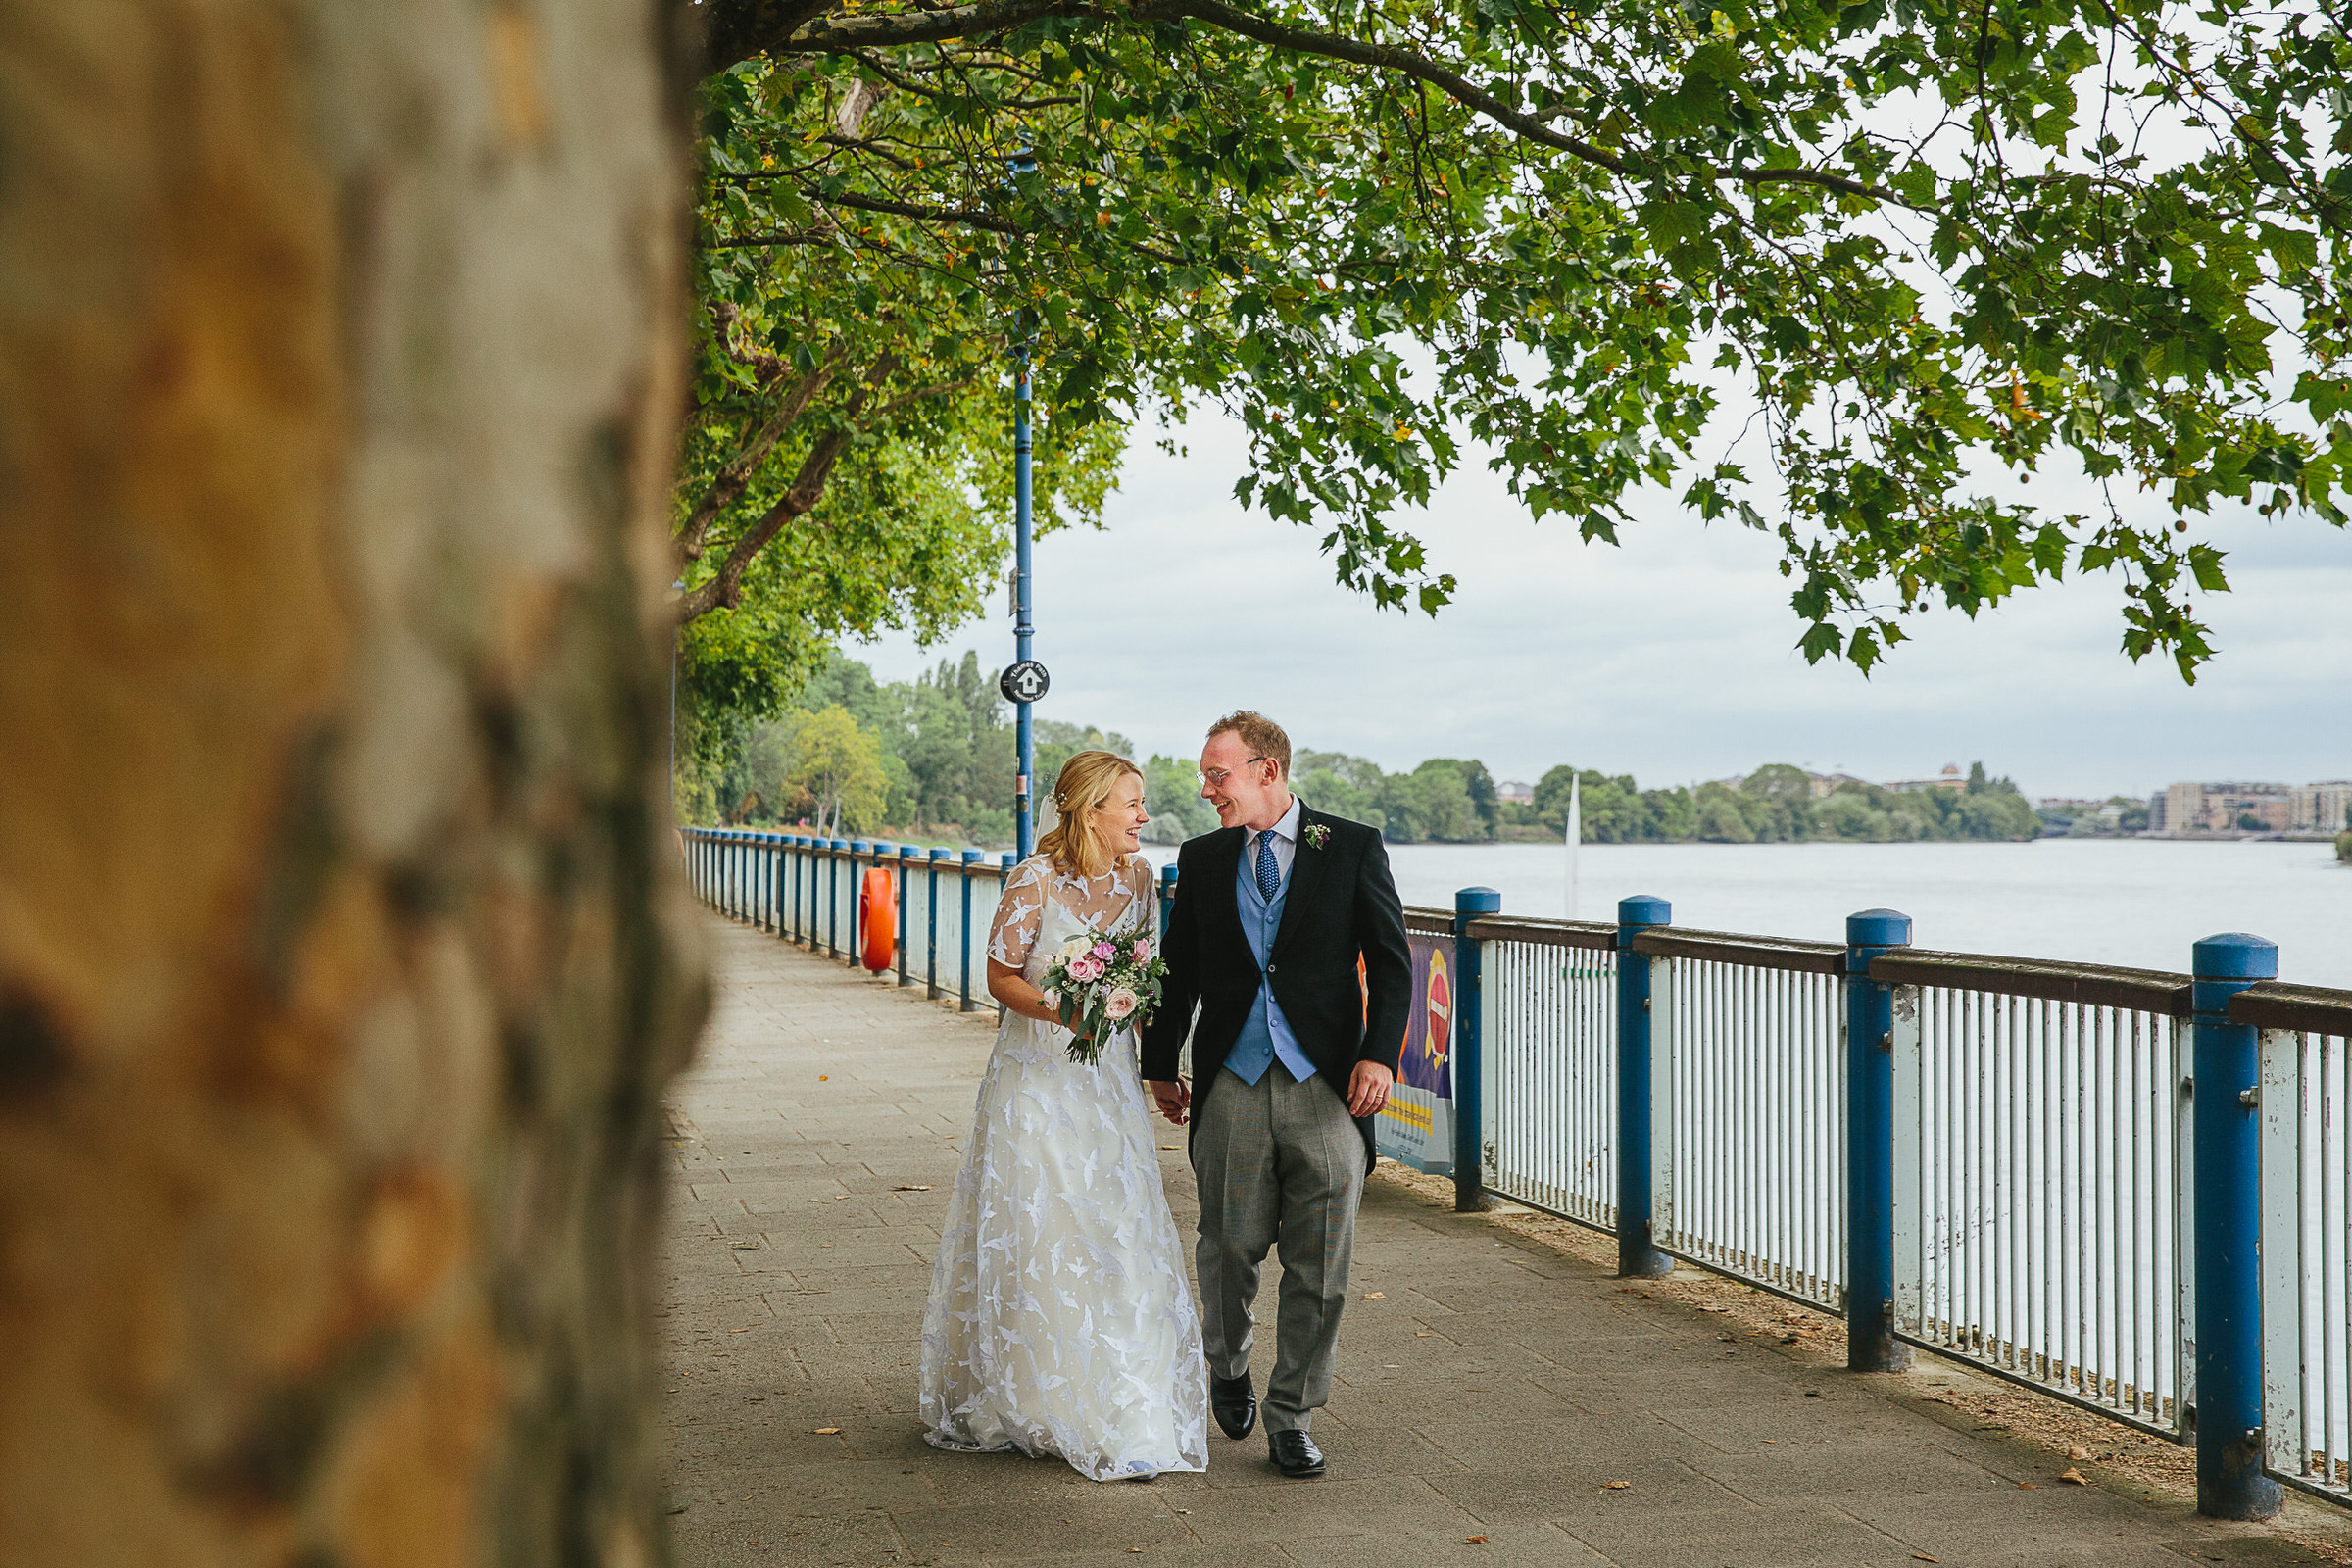 putney embankment wedding